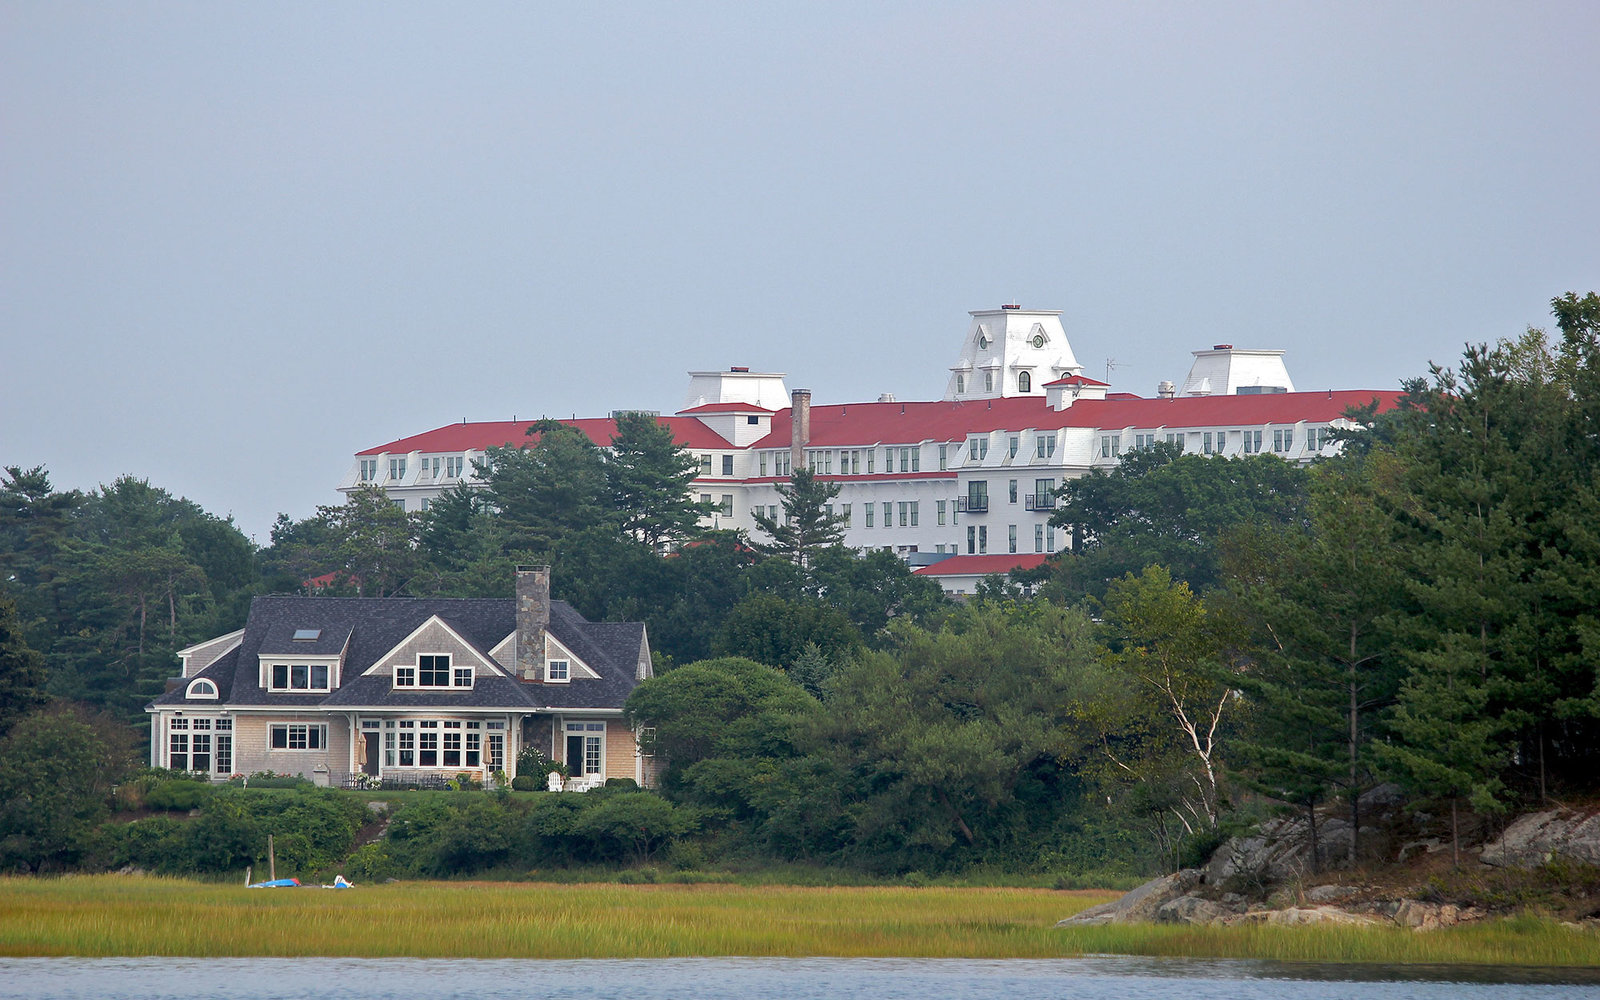 New Hampshire: Wentworth by the Sea, a Marriott Hotel & Spa